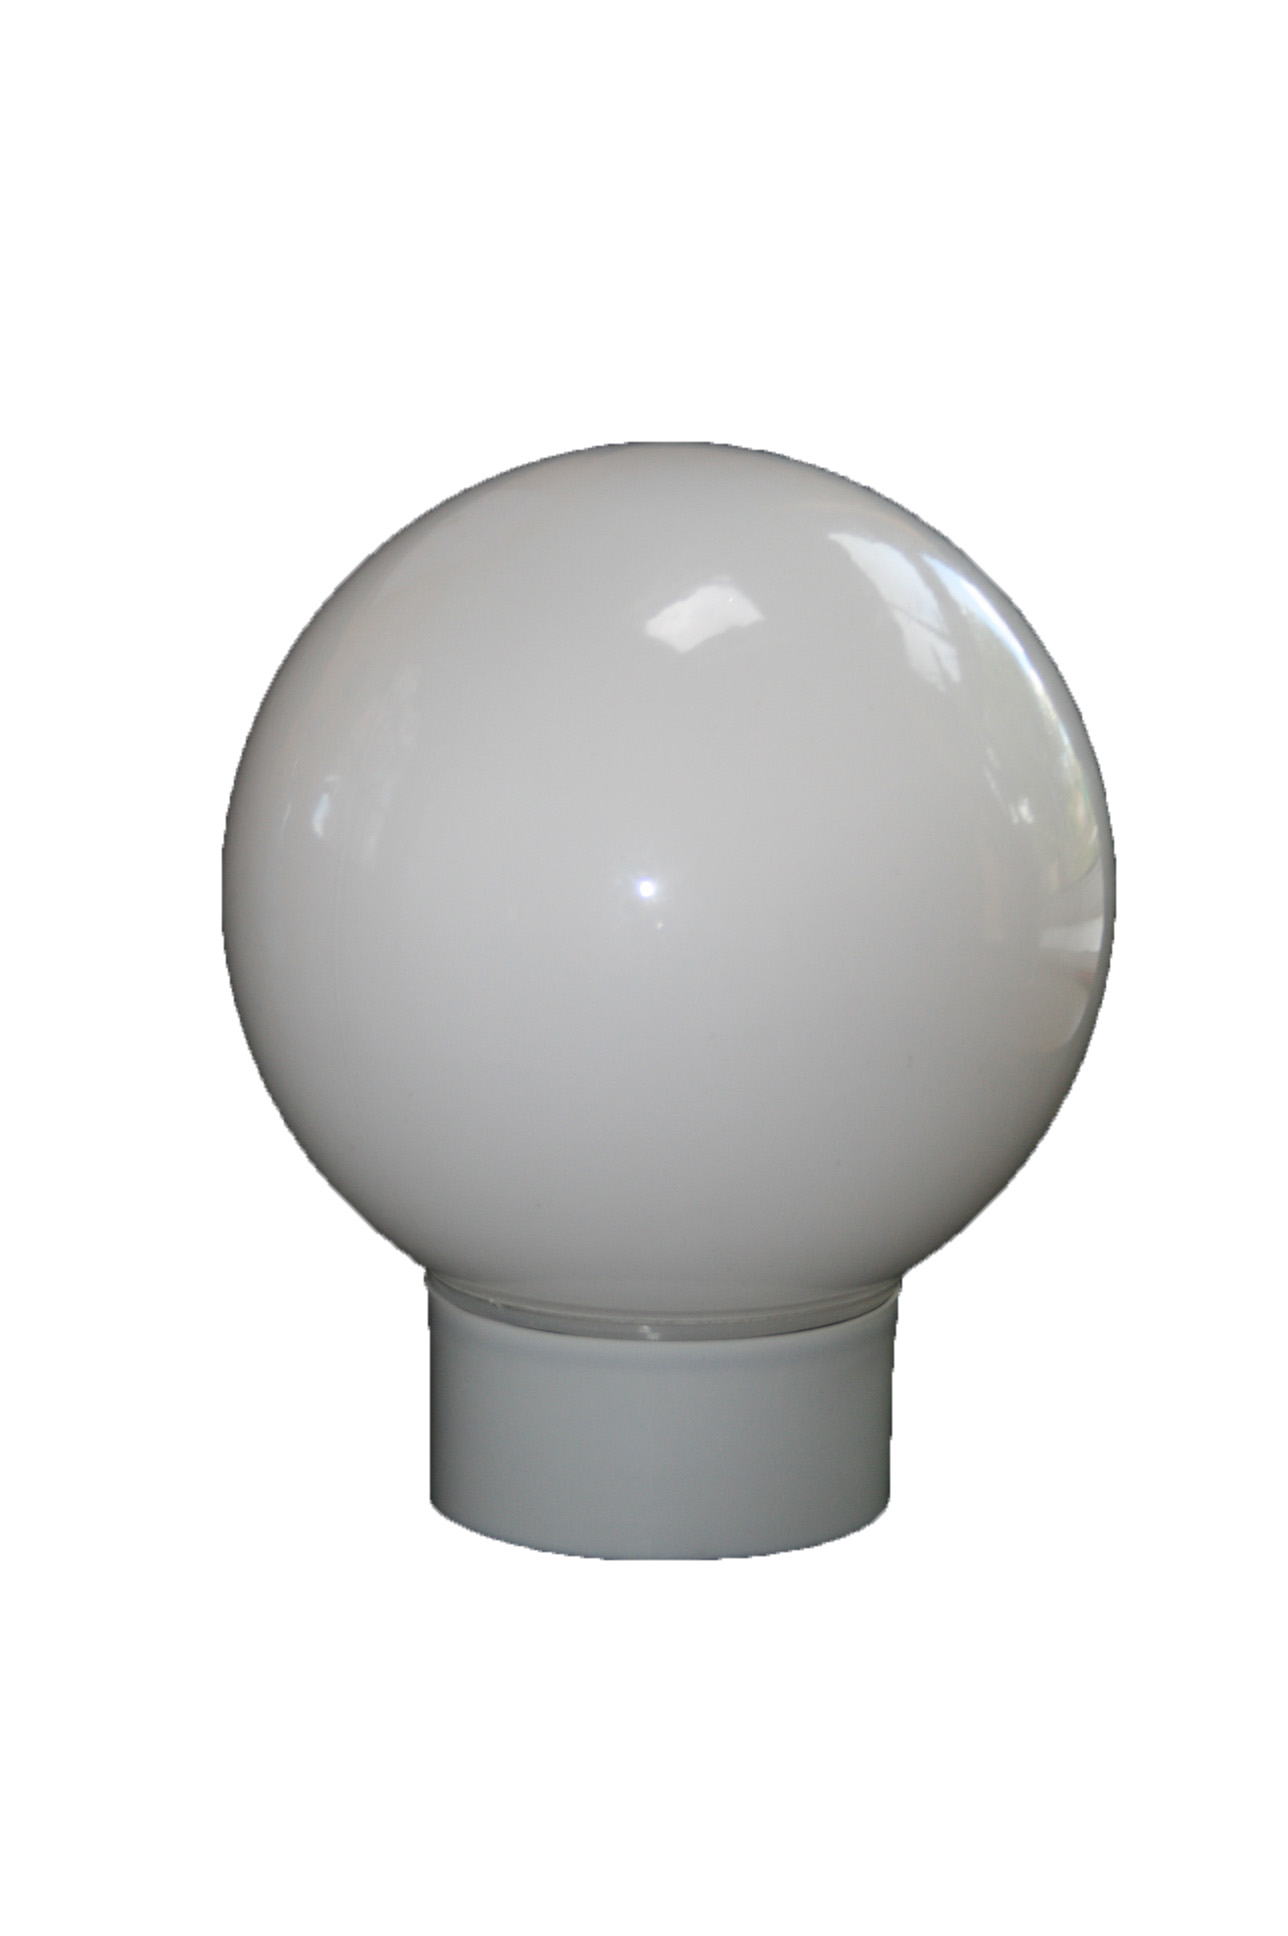 Globe Ceiling Light Fitting Double Insulated Bc Lamp Base And Round Opal Small Glass Bowl